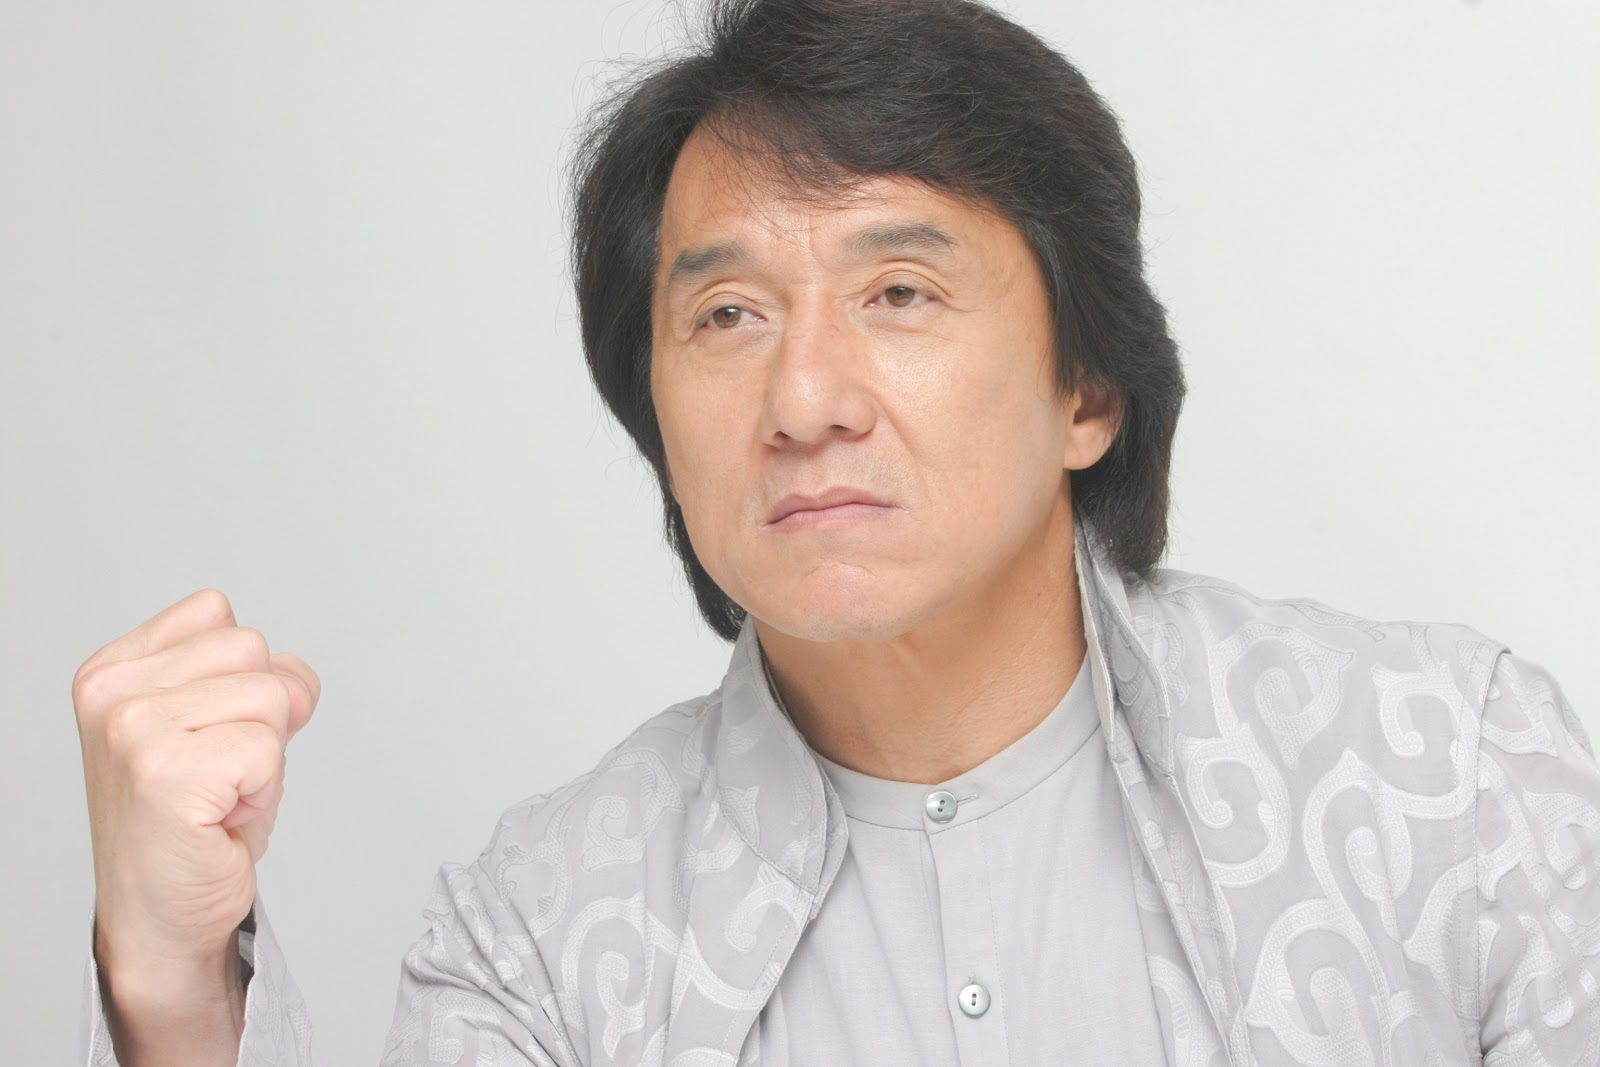 Good Quality Jackie Chan HD Wallpaper Wallpaper